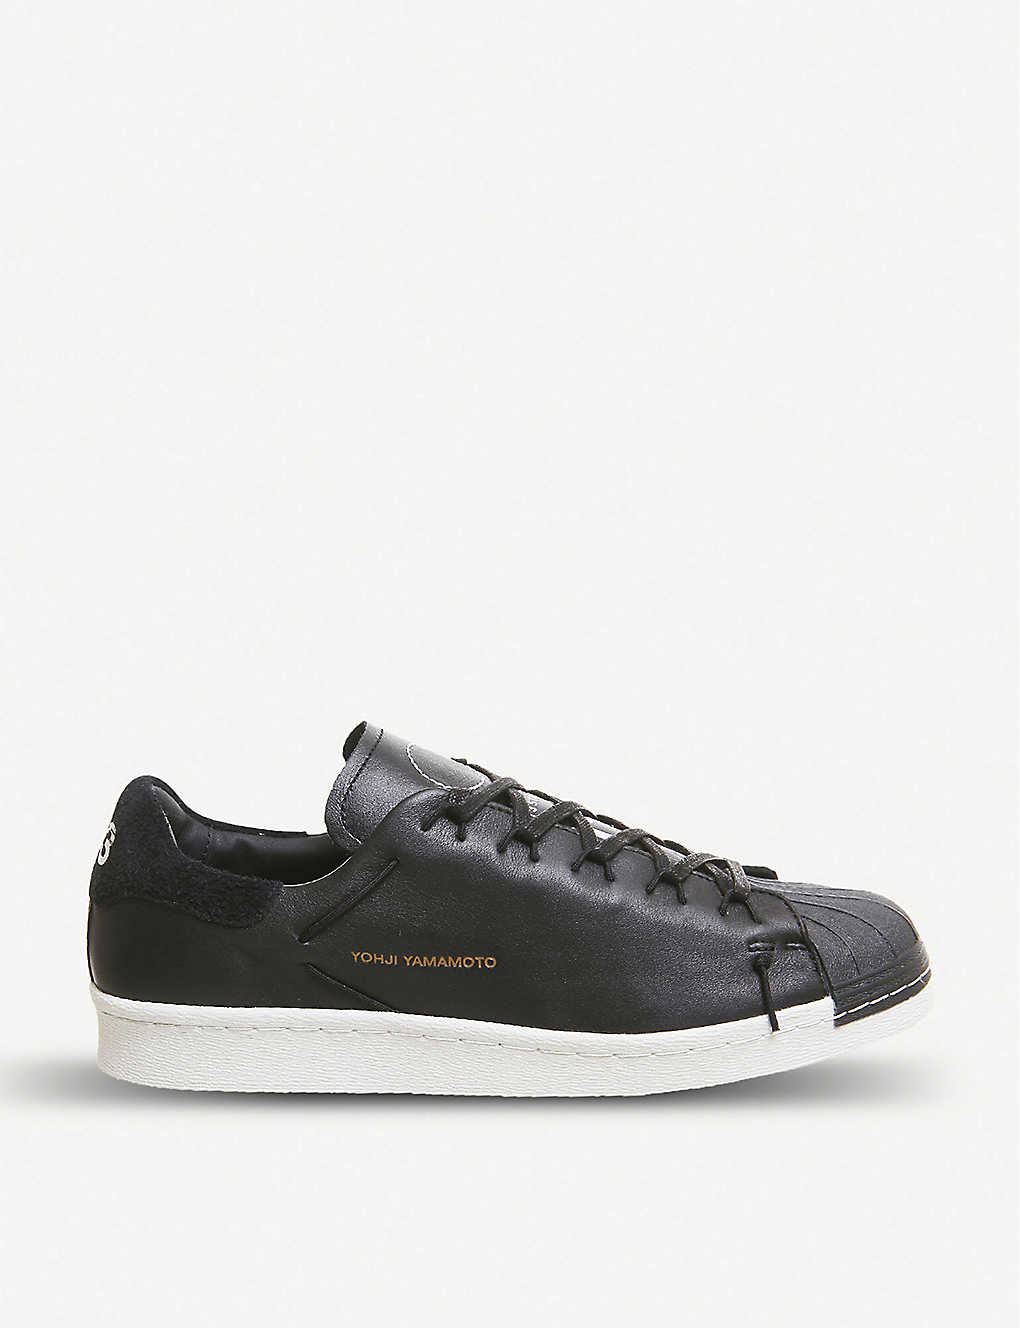 83a1f99d3e30 ADIDAS Y3 - Y-3 Super Knot leather sneakers